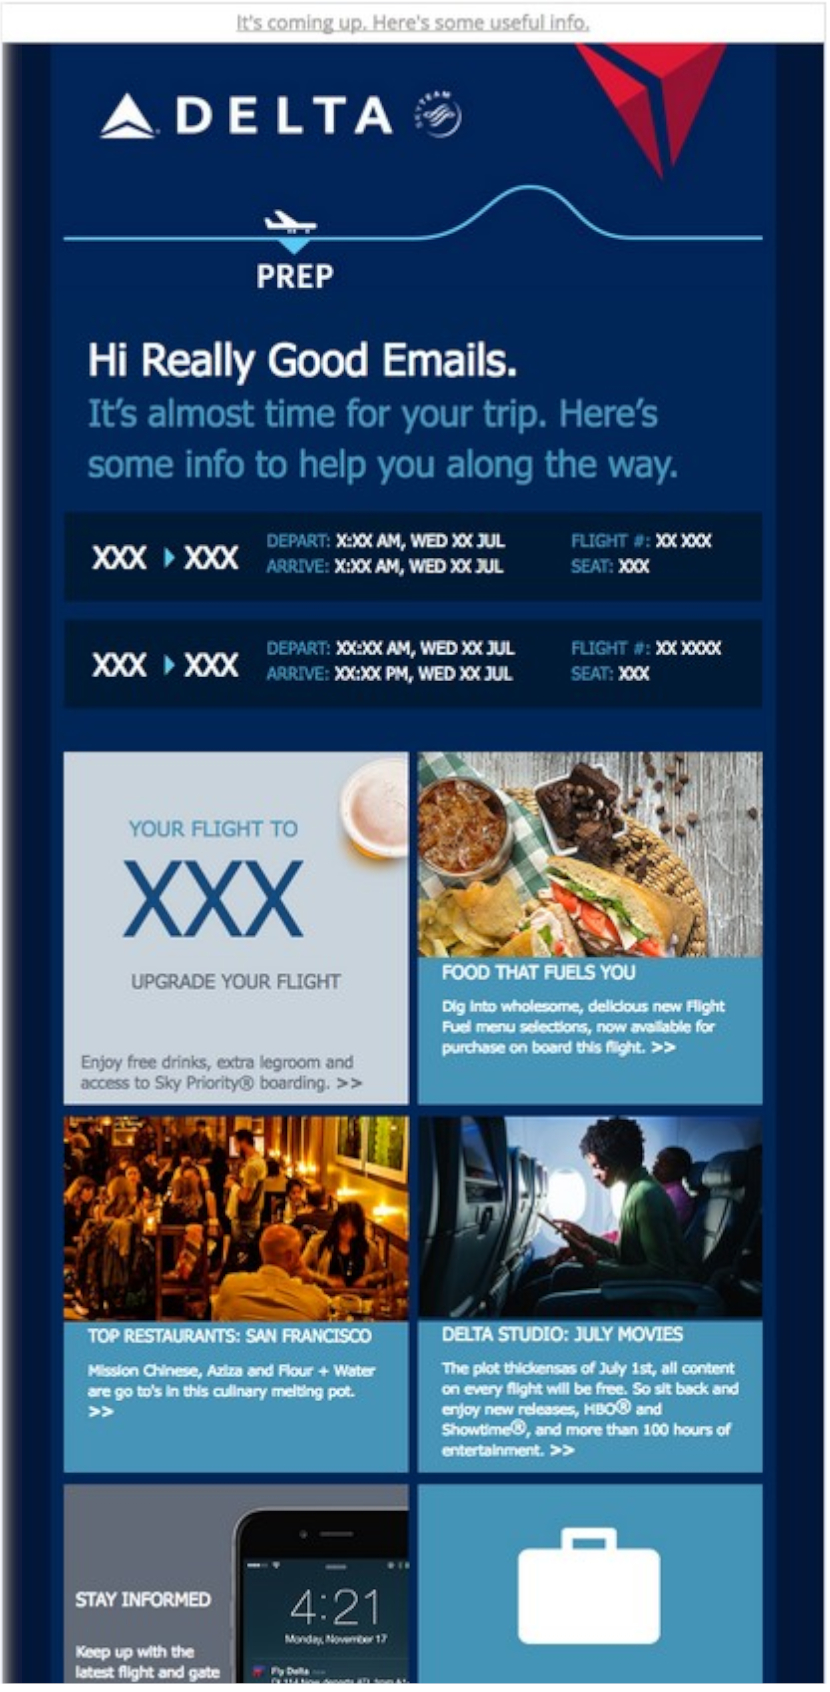 Itinerary details give you the opportunity to market other services.